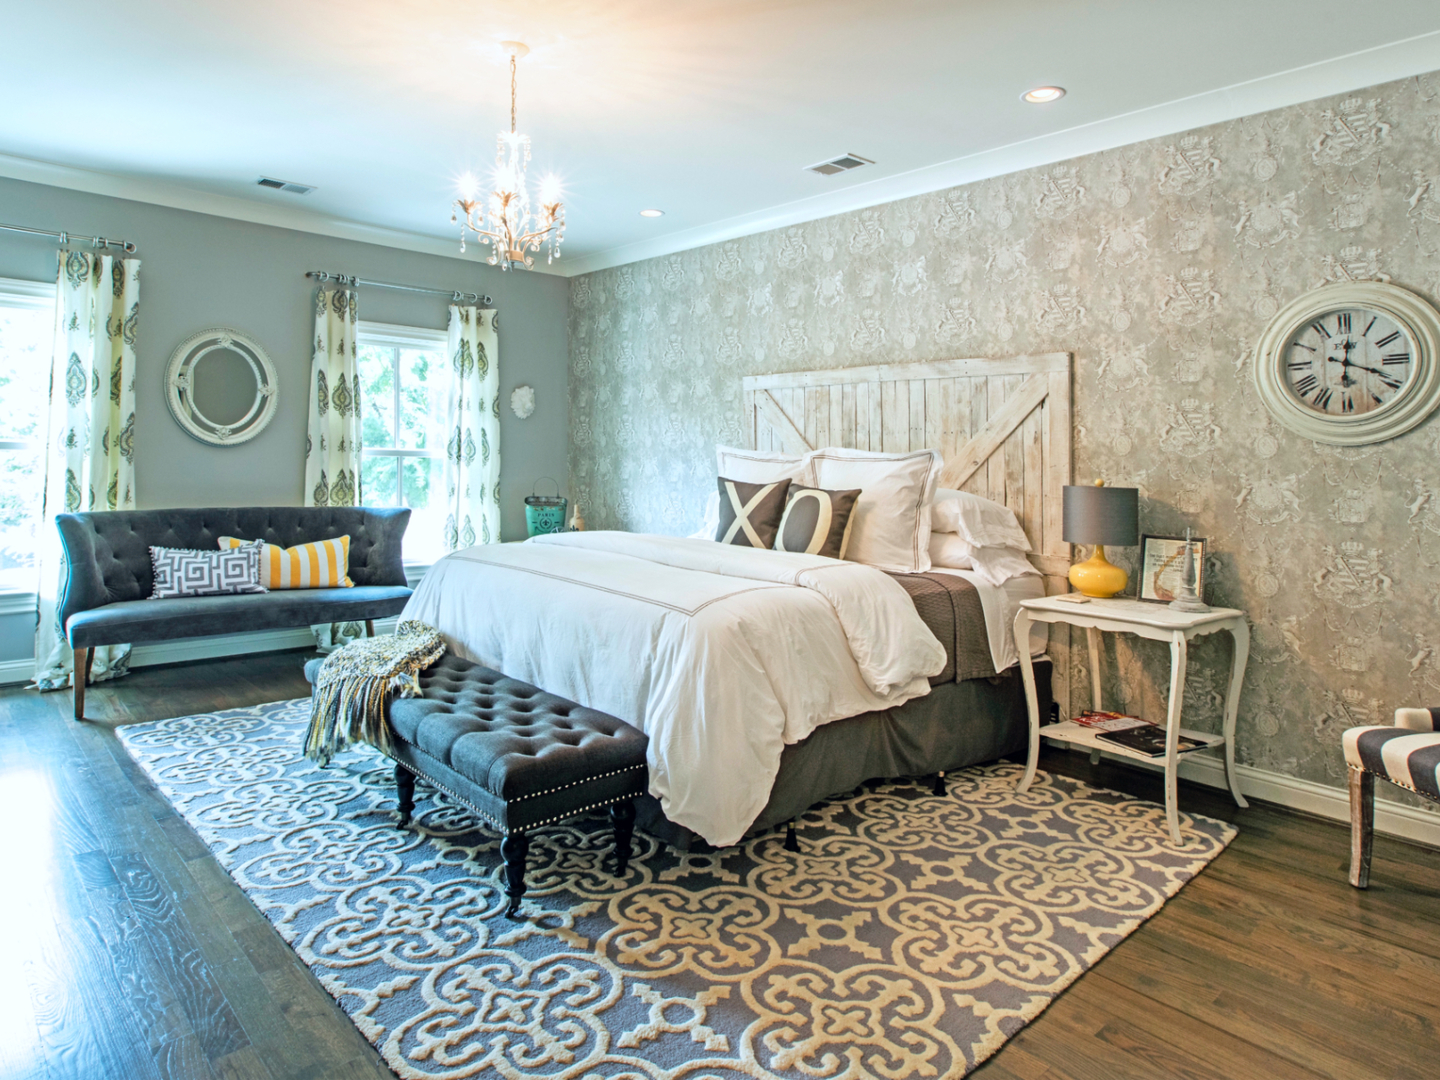 A bedroom with a bed and a chair in a room at Chateau Bourbon.